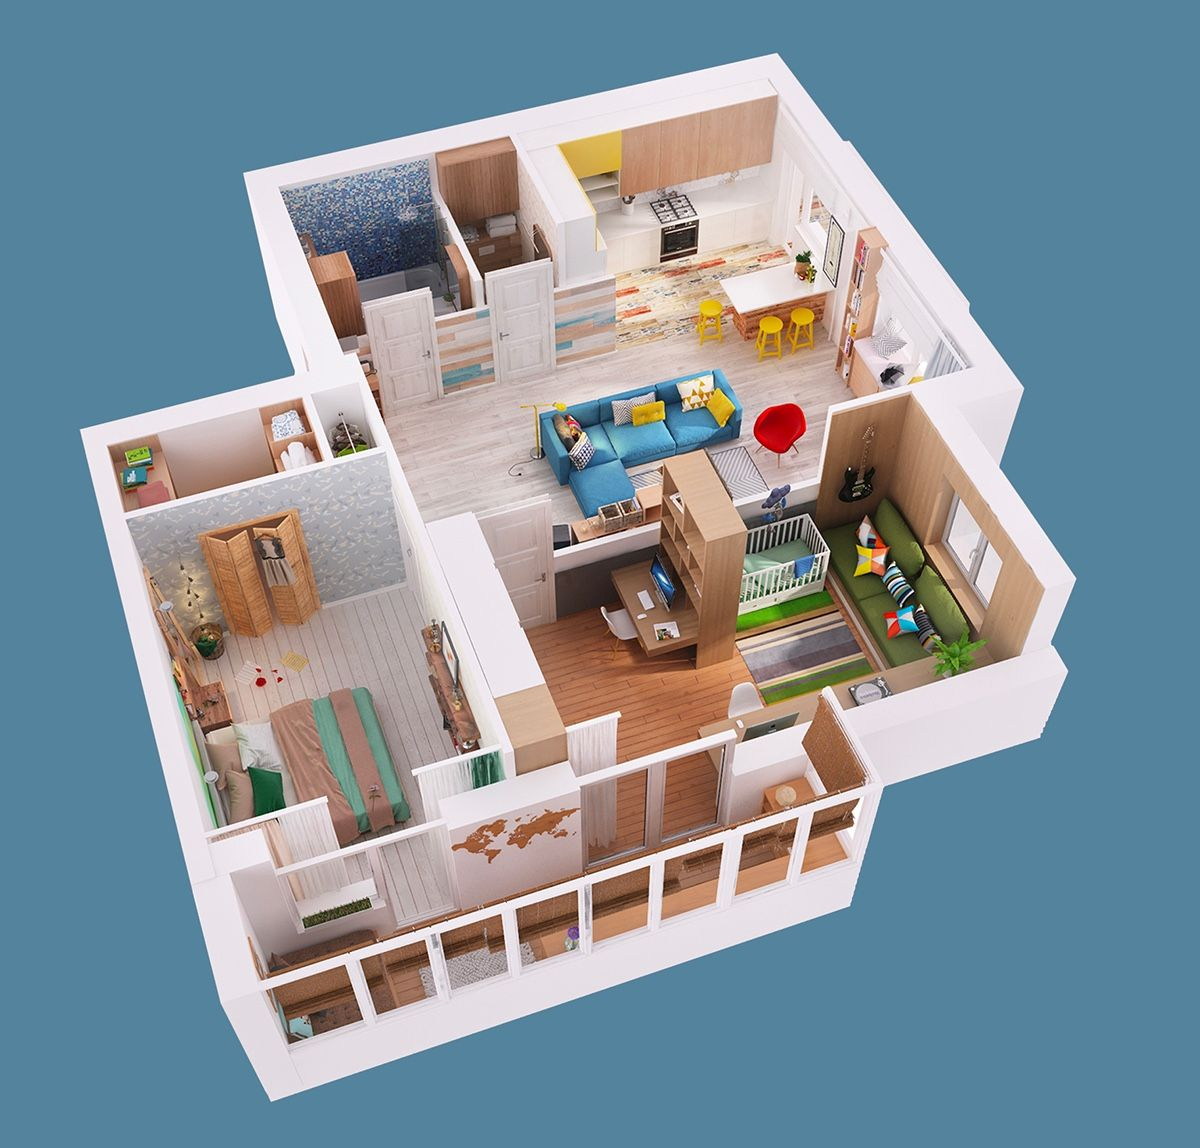 2 gorgeous single story homes with 80 square meter floor space includes